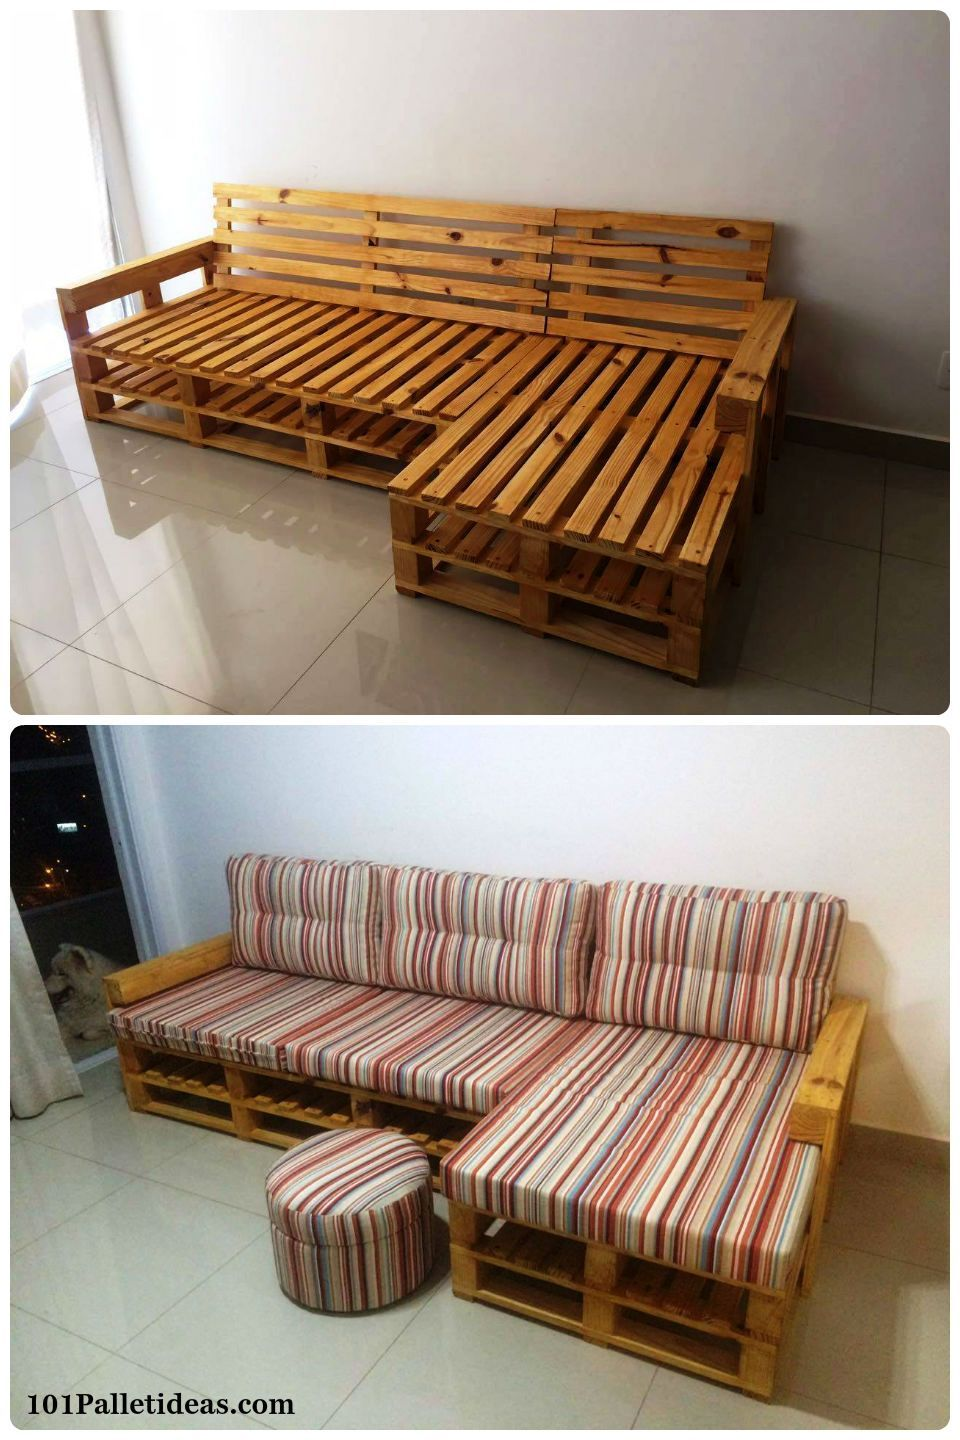 Paletten Sofa Verkleiden 20 Pallet Ideas You Can Diy For Your Home Curiosidades Pallet